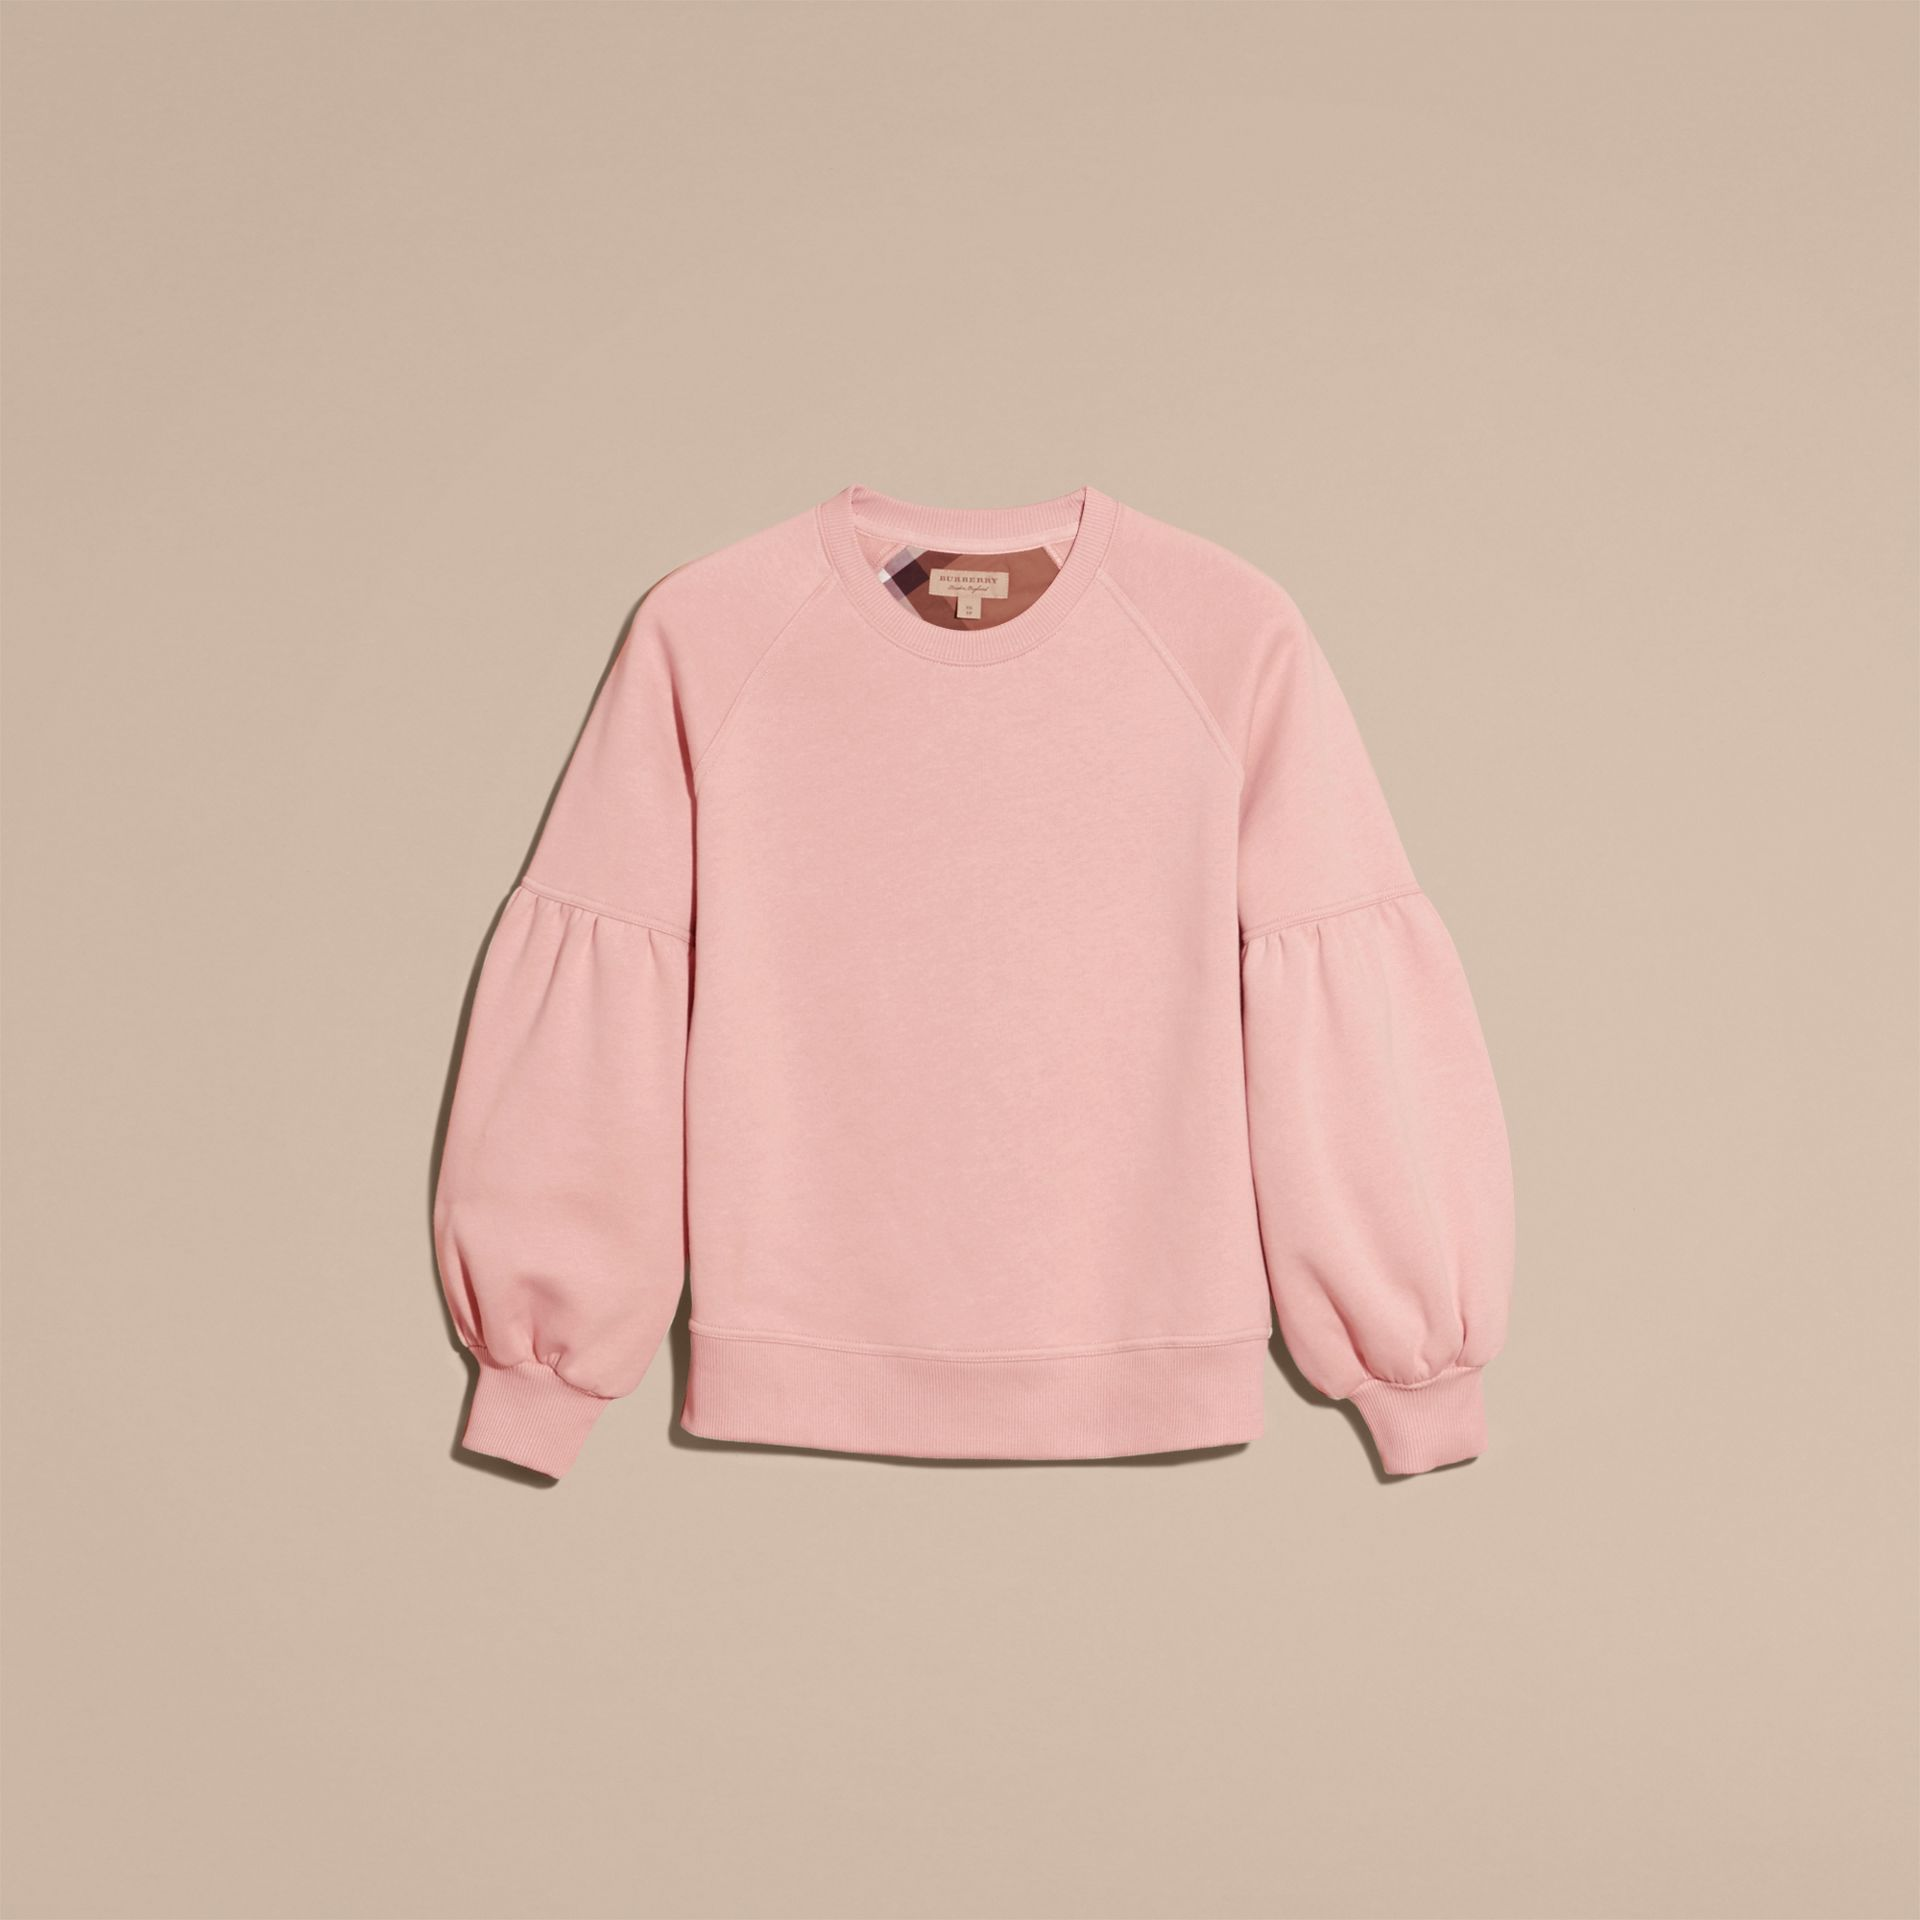 Ash rose Brushed-back Jersey Sweatshirt with Bell Sleeves Ash Rose - gallery image 4